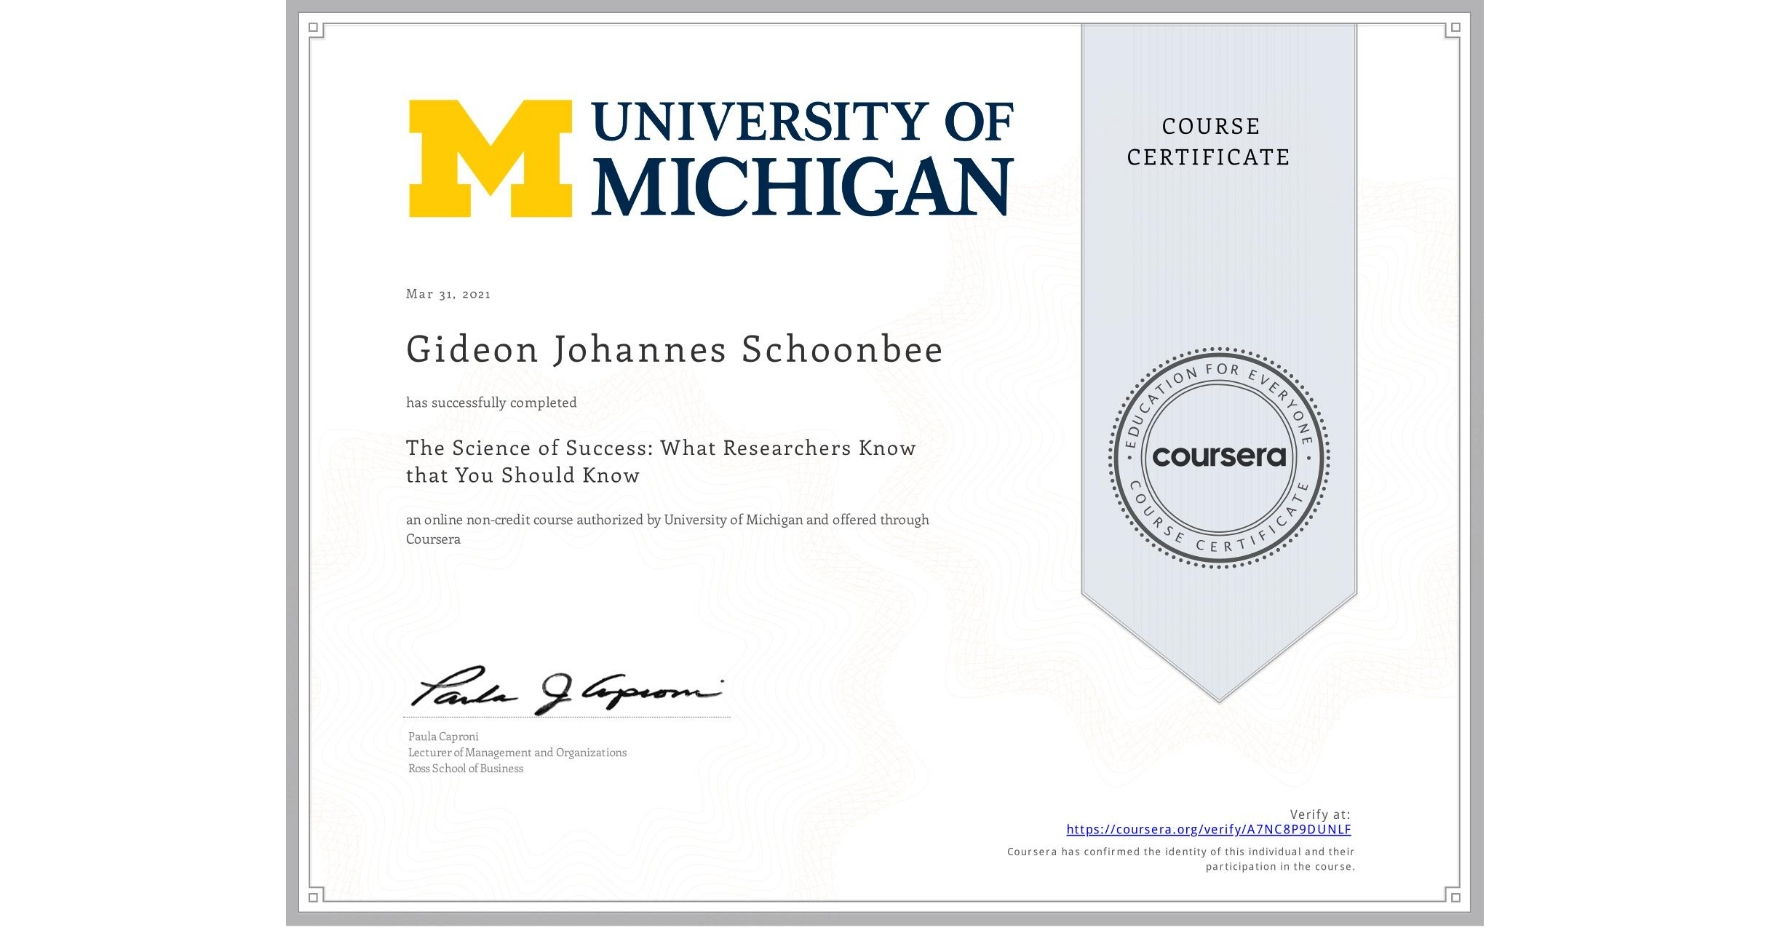 View certificate for Gideon Johannes Schoonbee, The Science of Success: What Researchers Know that You Should Know, an online non-credit course authorized by University of Michigan and offered through Coursera